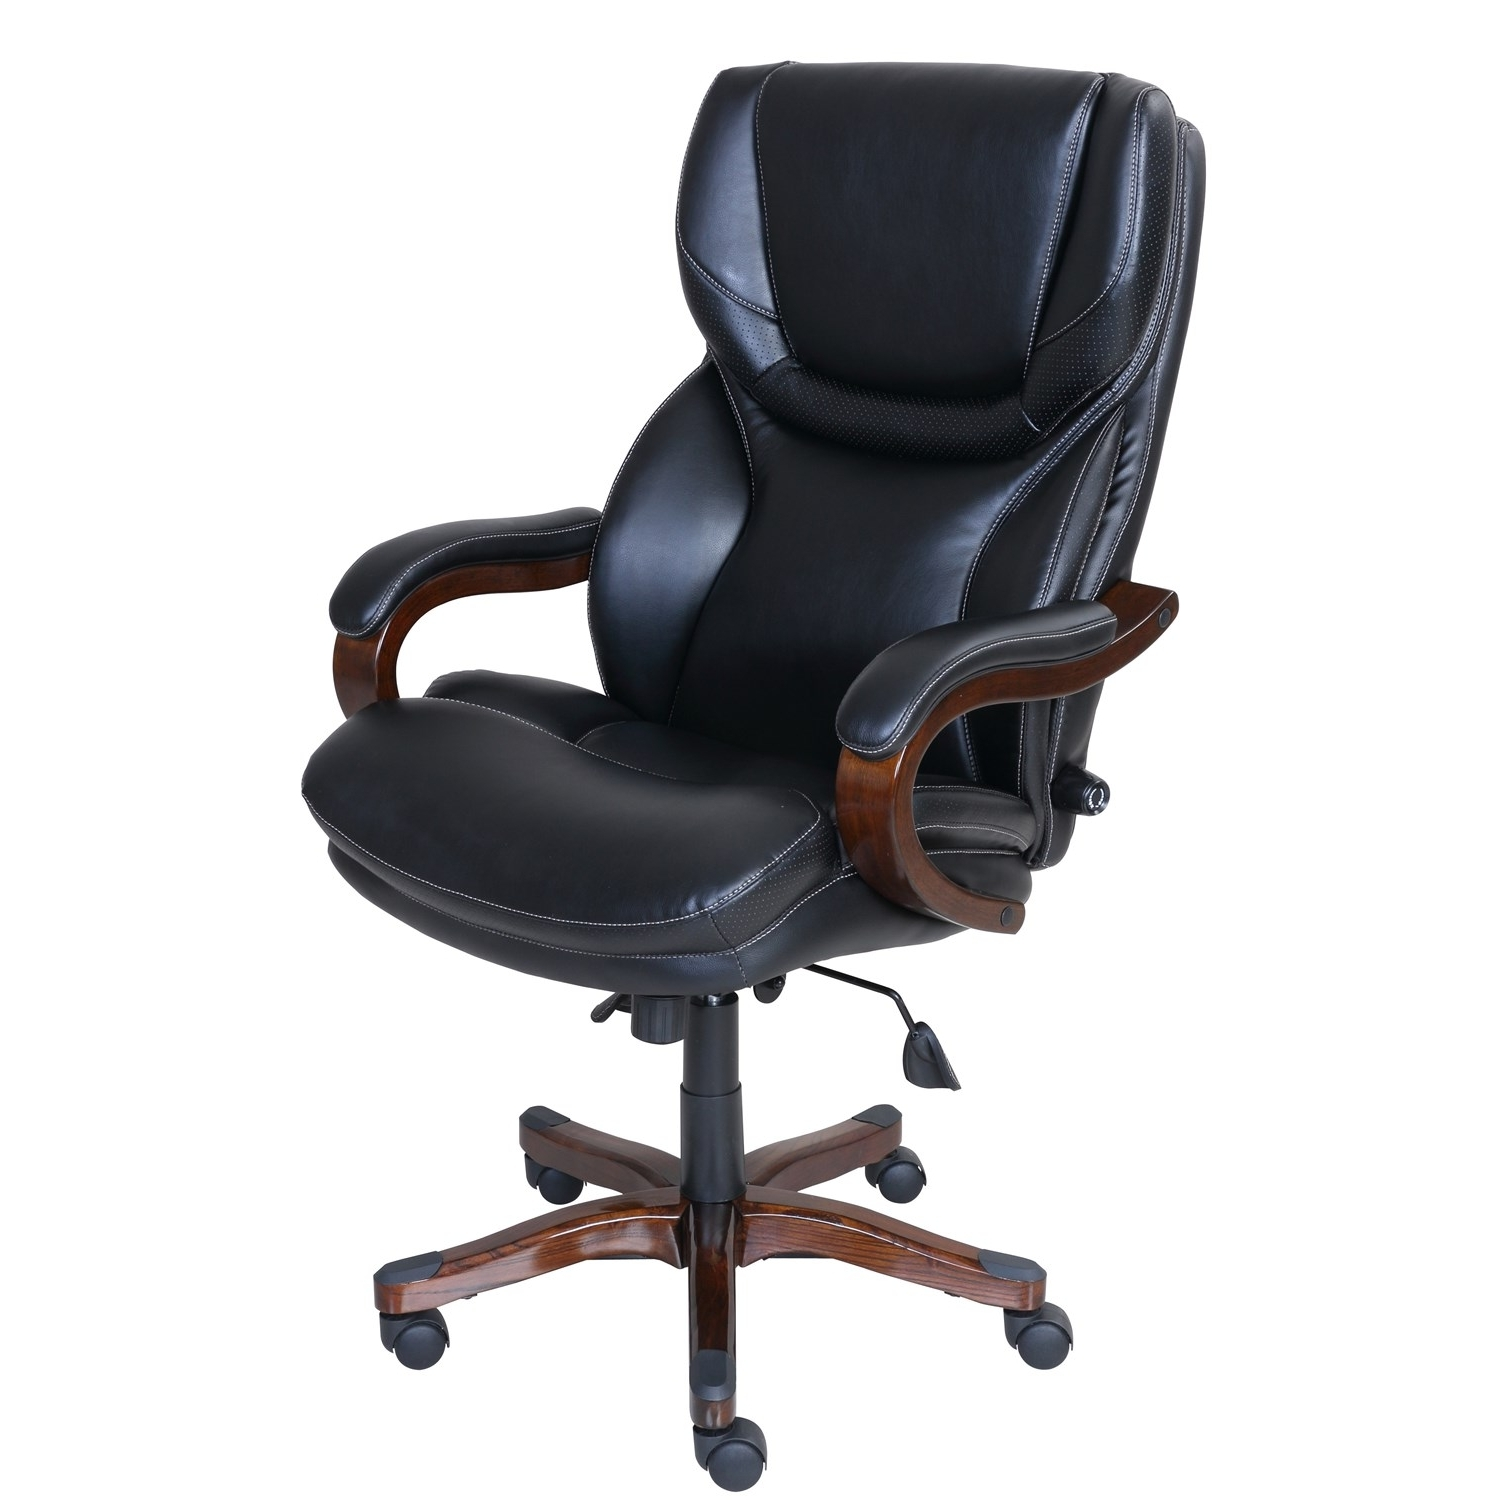 Most Current La Z Boy Executive Office Chairs Pertaining To Serta At Home 46859 Executive Office Chair In Black With Bonded (View 15 of 20)